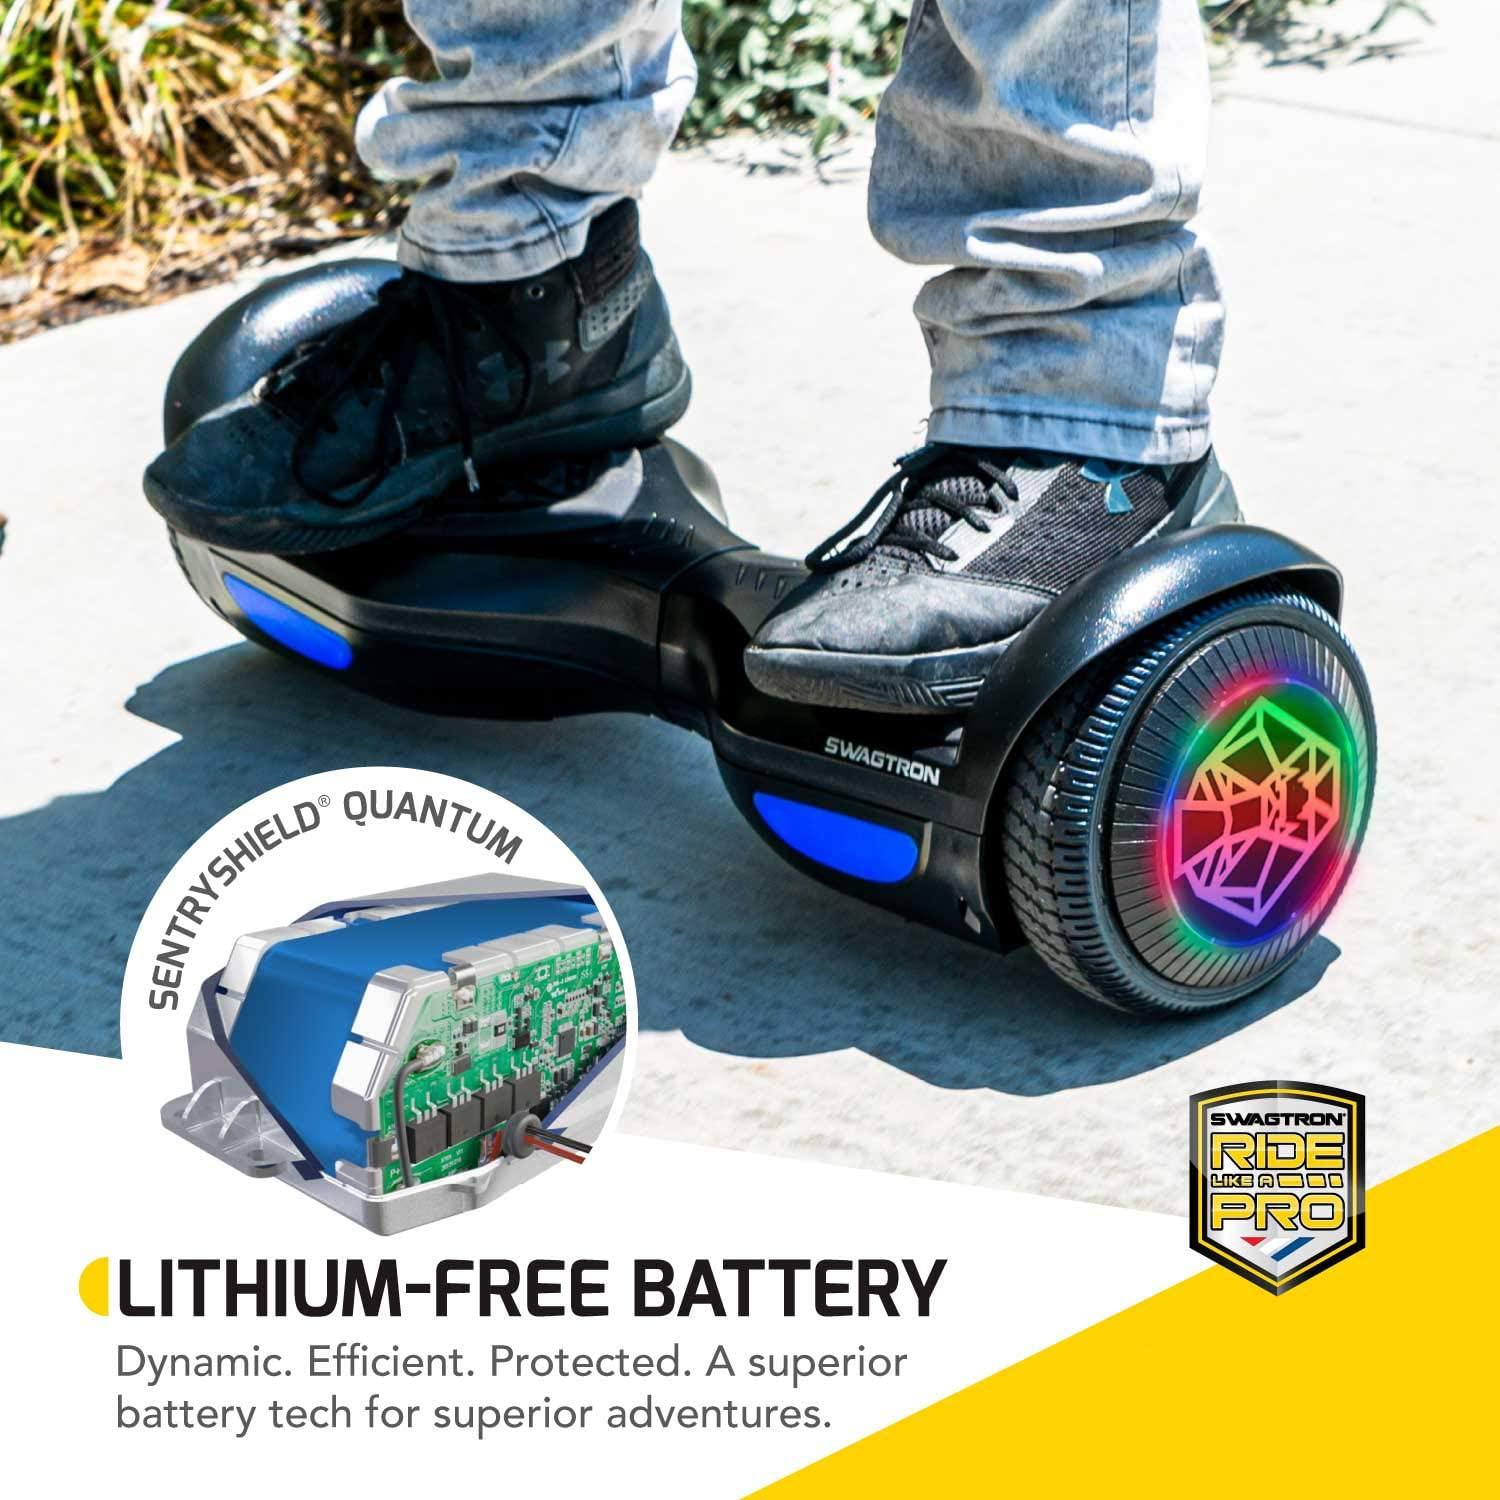 Swagboard Twist Lithium-Free Kids Hoverboard - 2